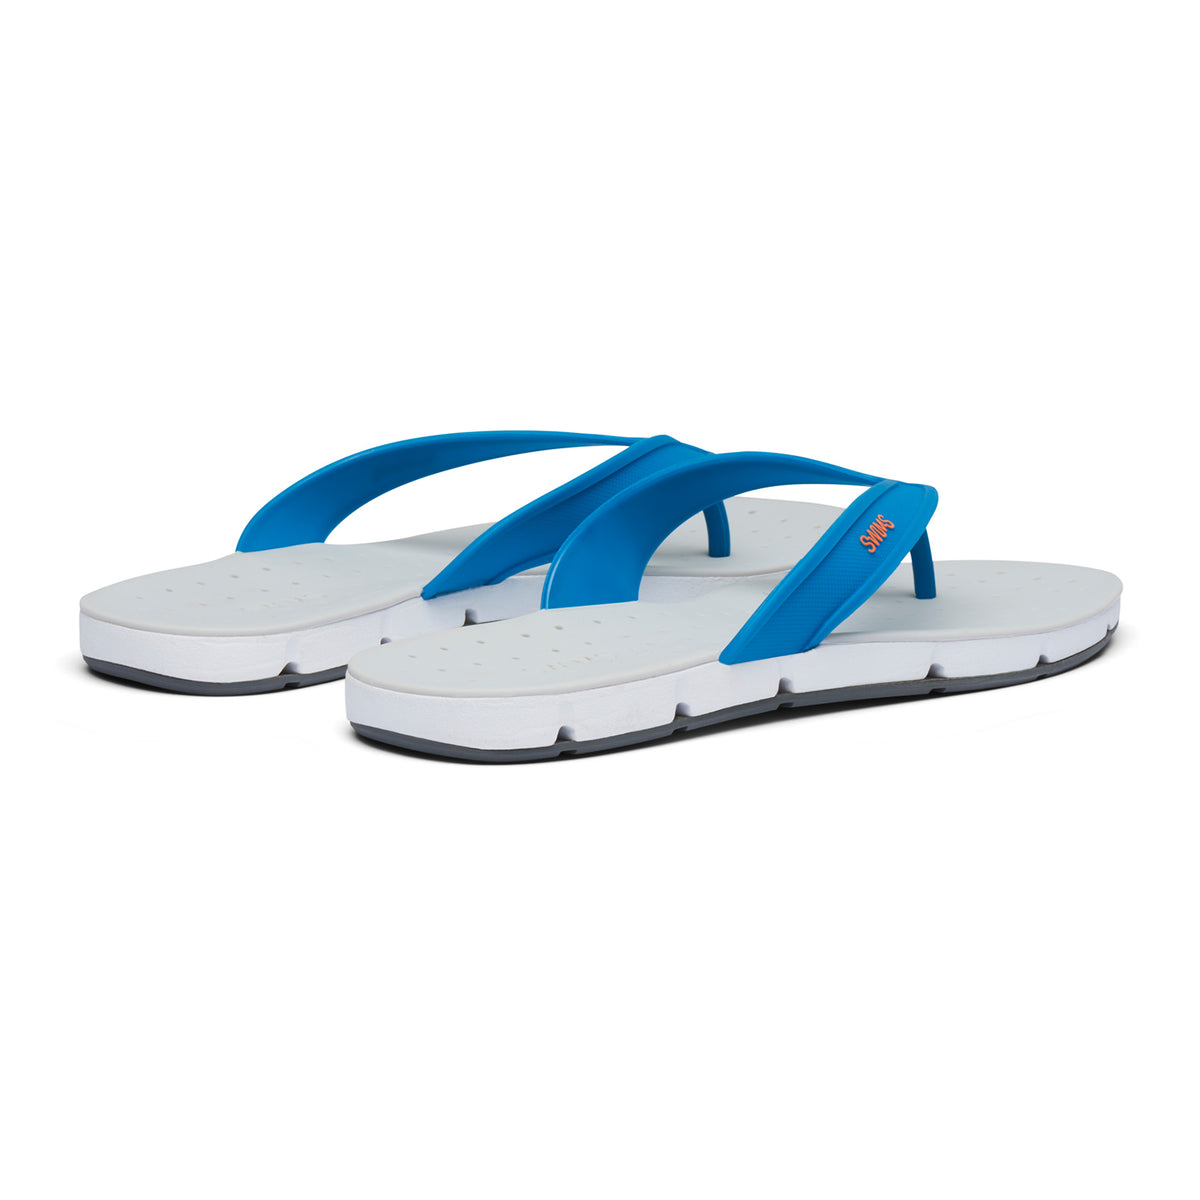 Breeze Thong Sandal - background::white,variant::Seaport Blue/Alloy